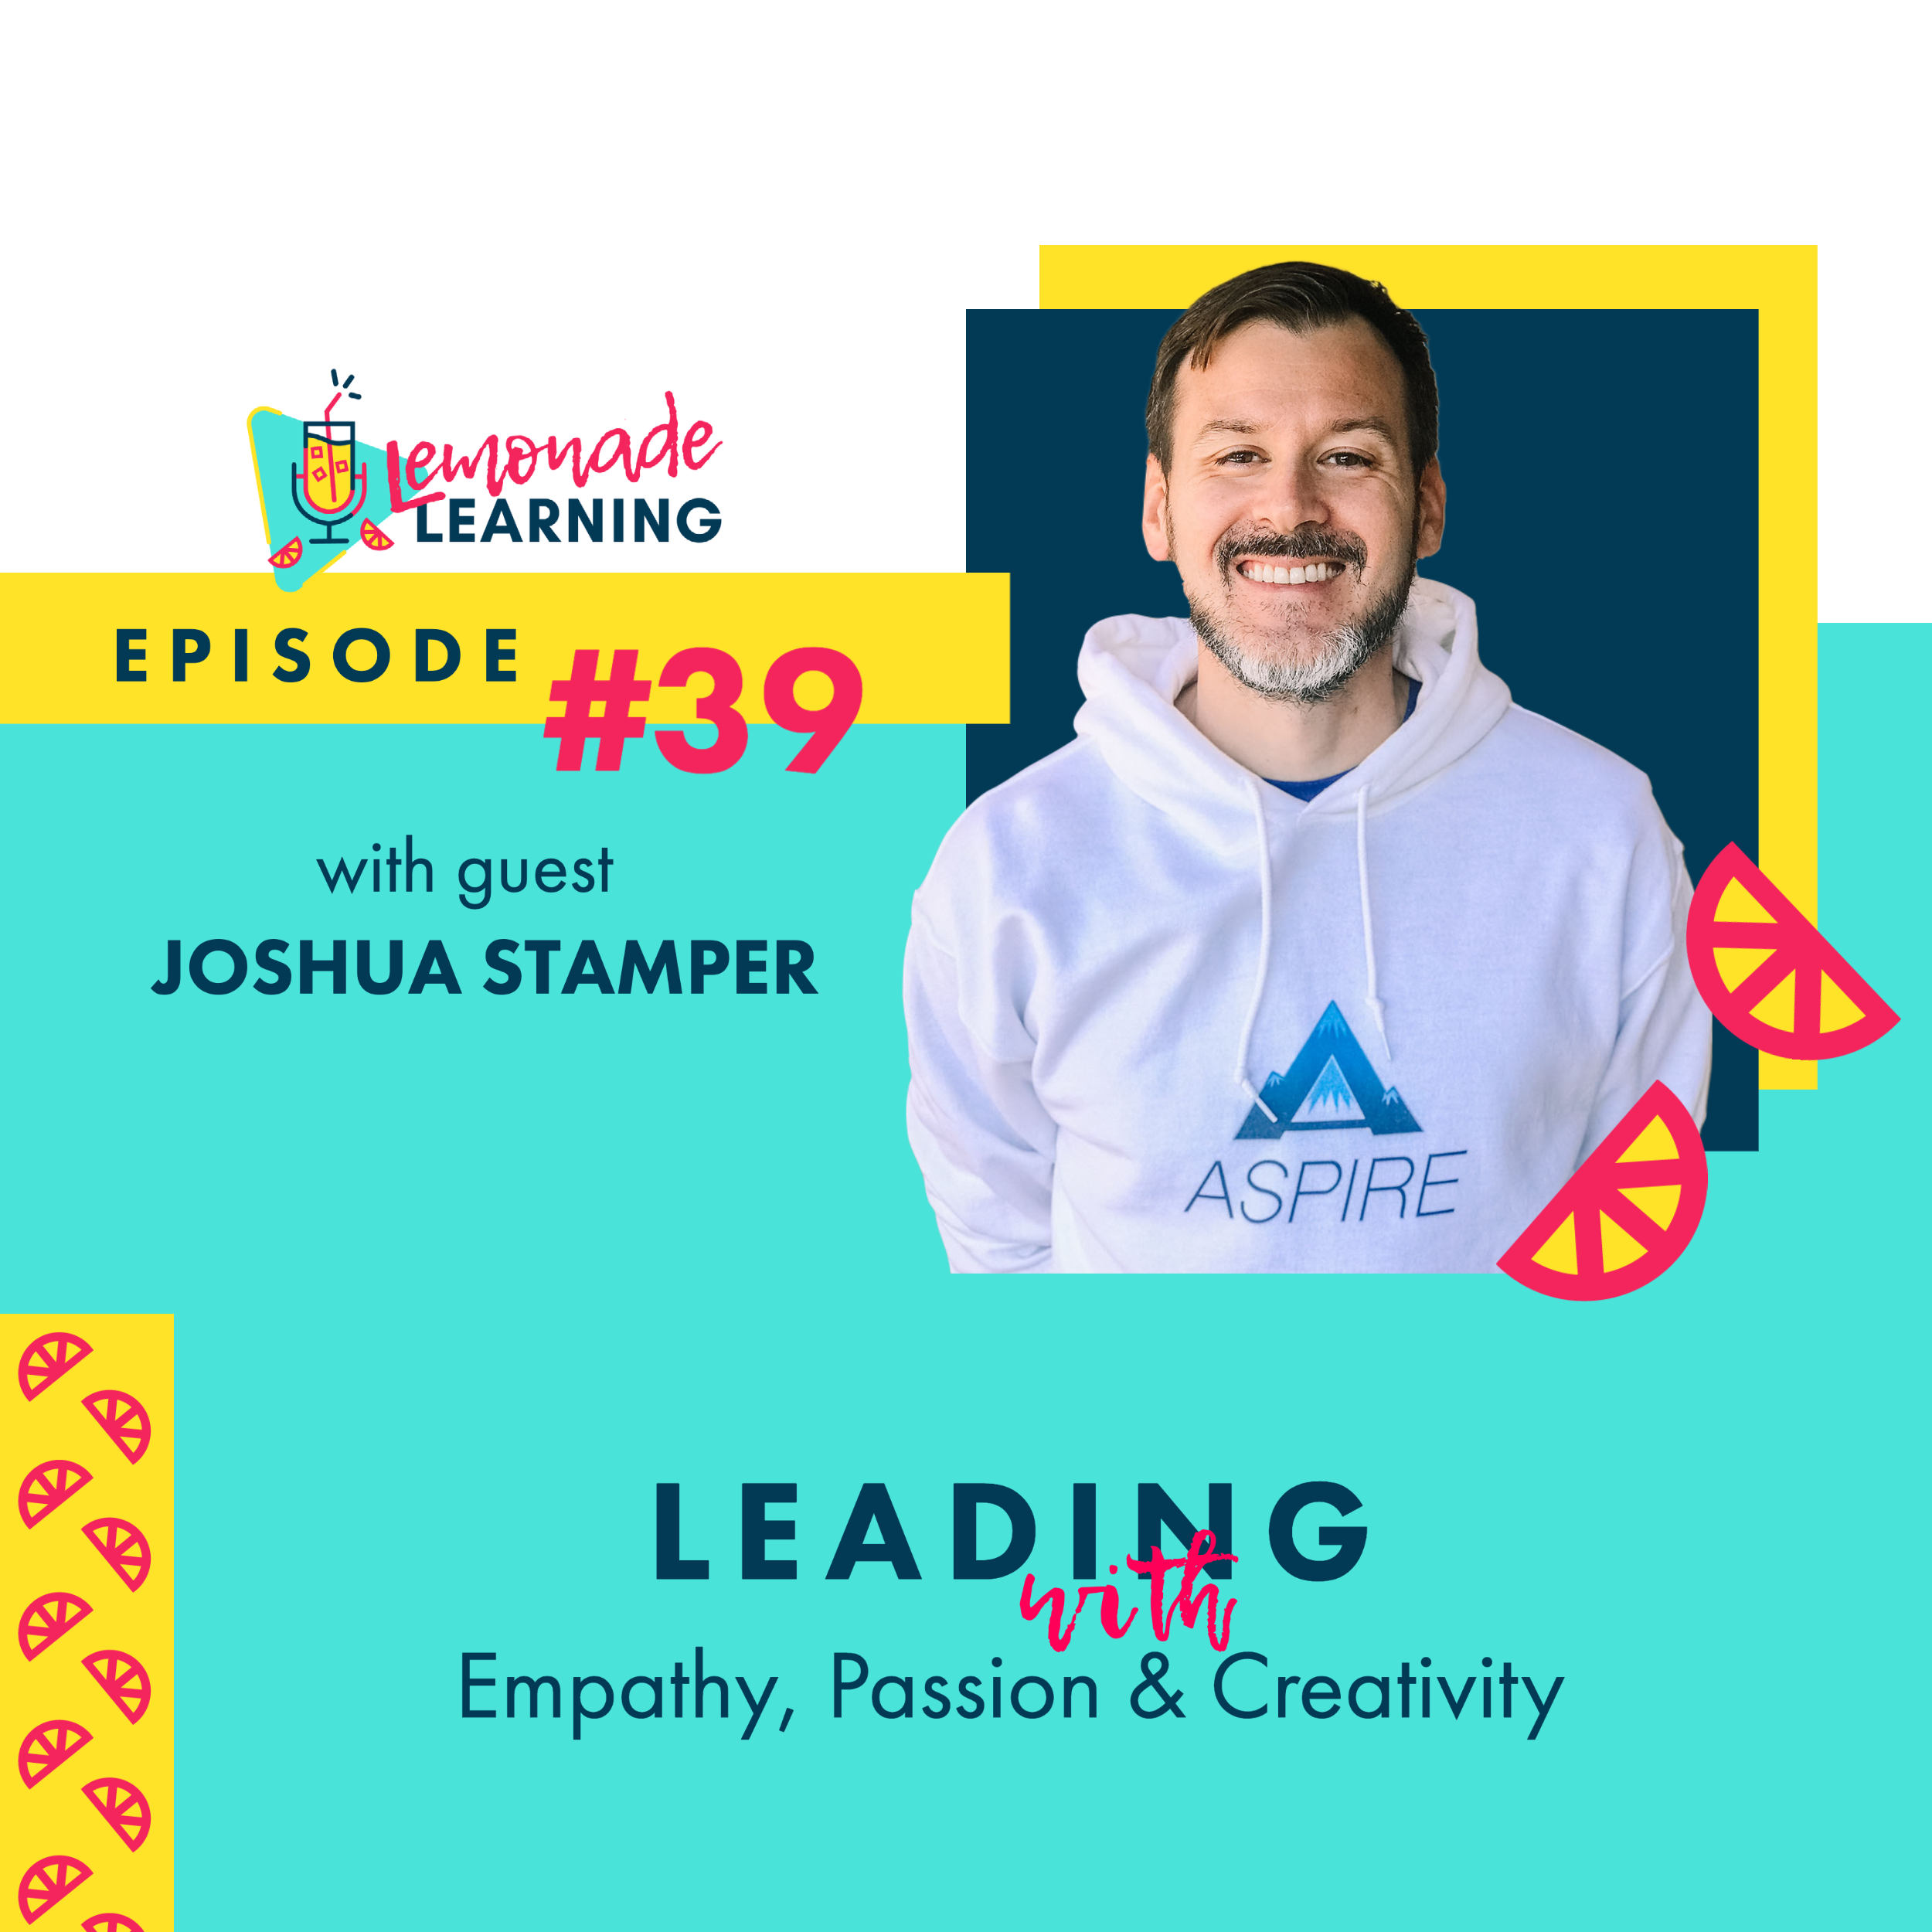 Joshua Stamper joins Lemonade Learning for Episode 39, Leading With Empathy, Passion and Creativity